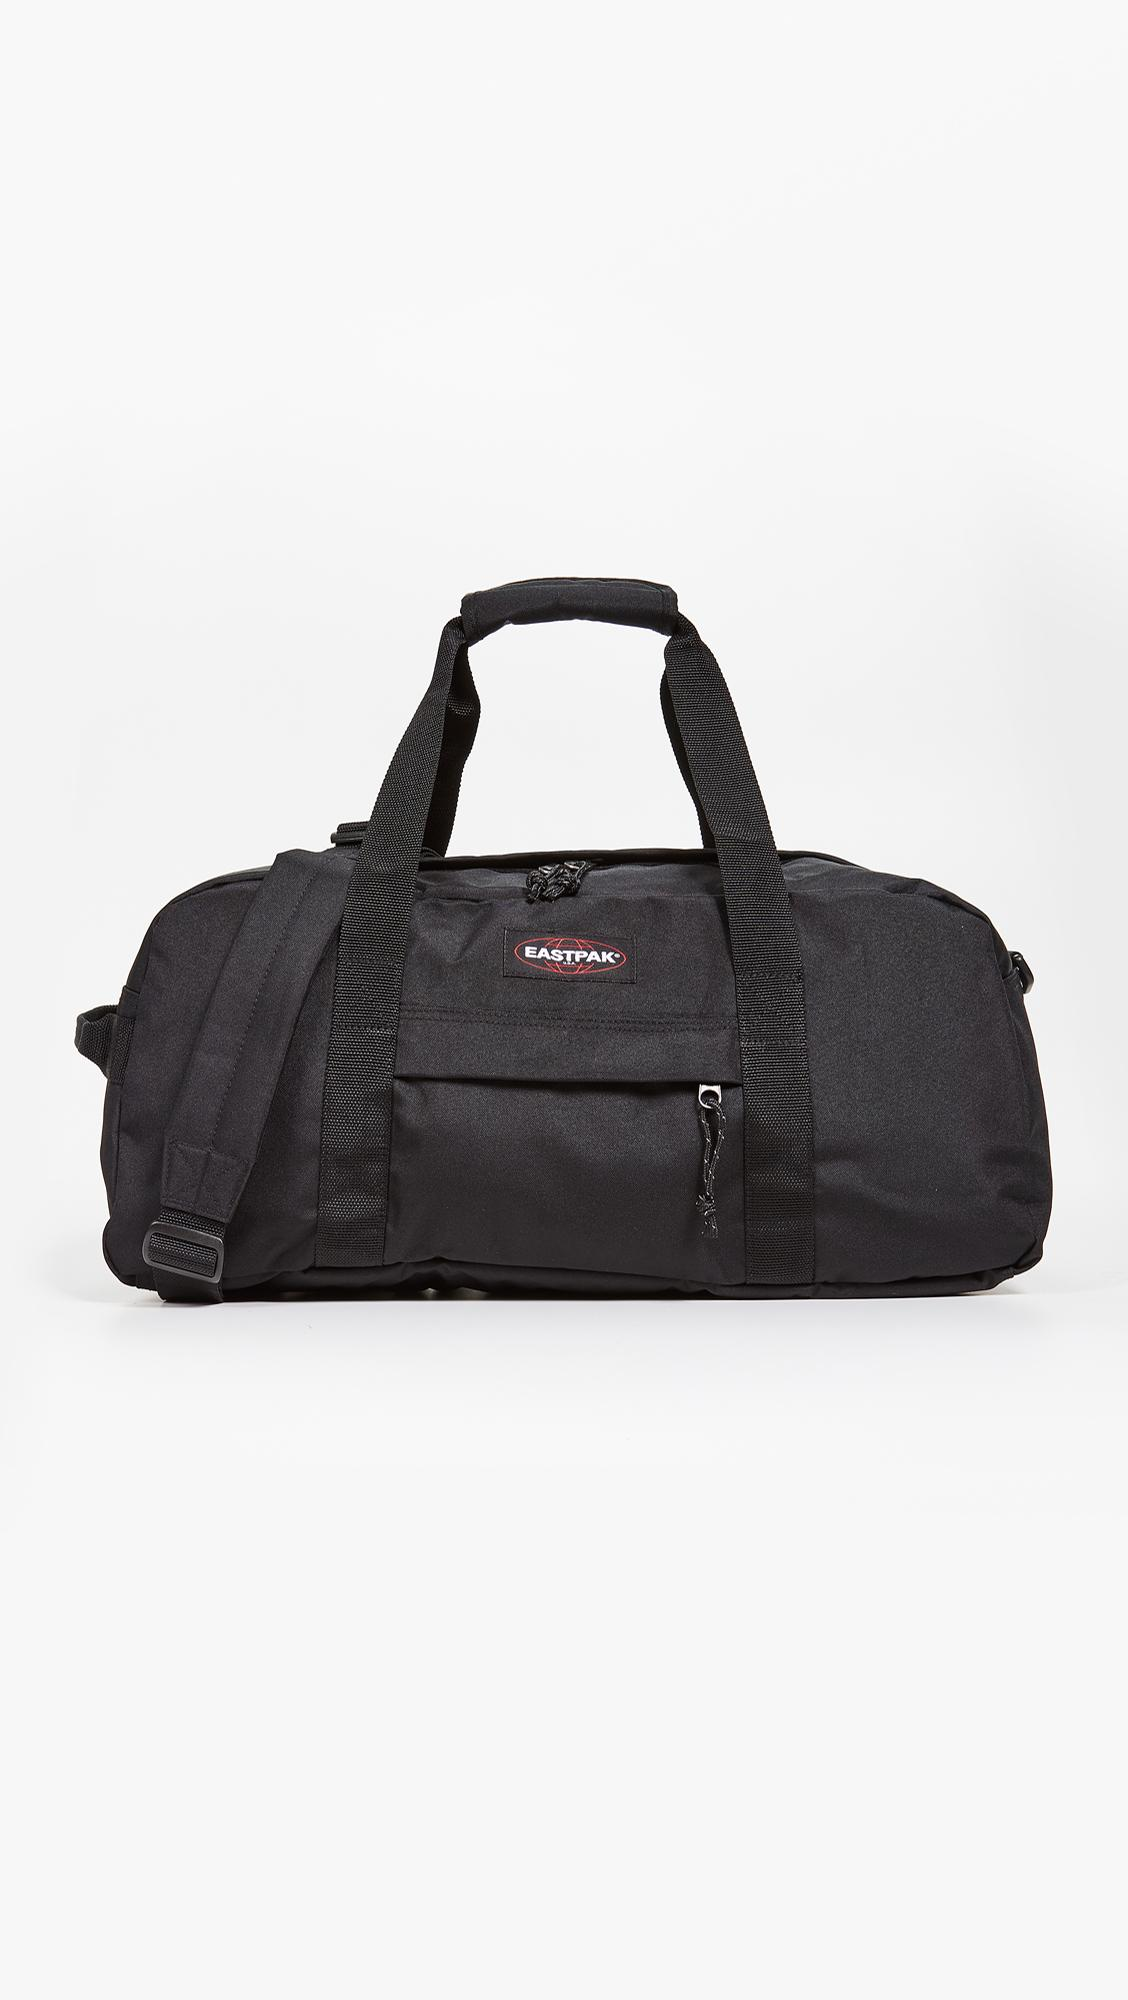 8acca29b1762 Lyst - Eastpak Stand Duffel Bag in Black for Men